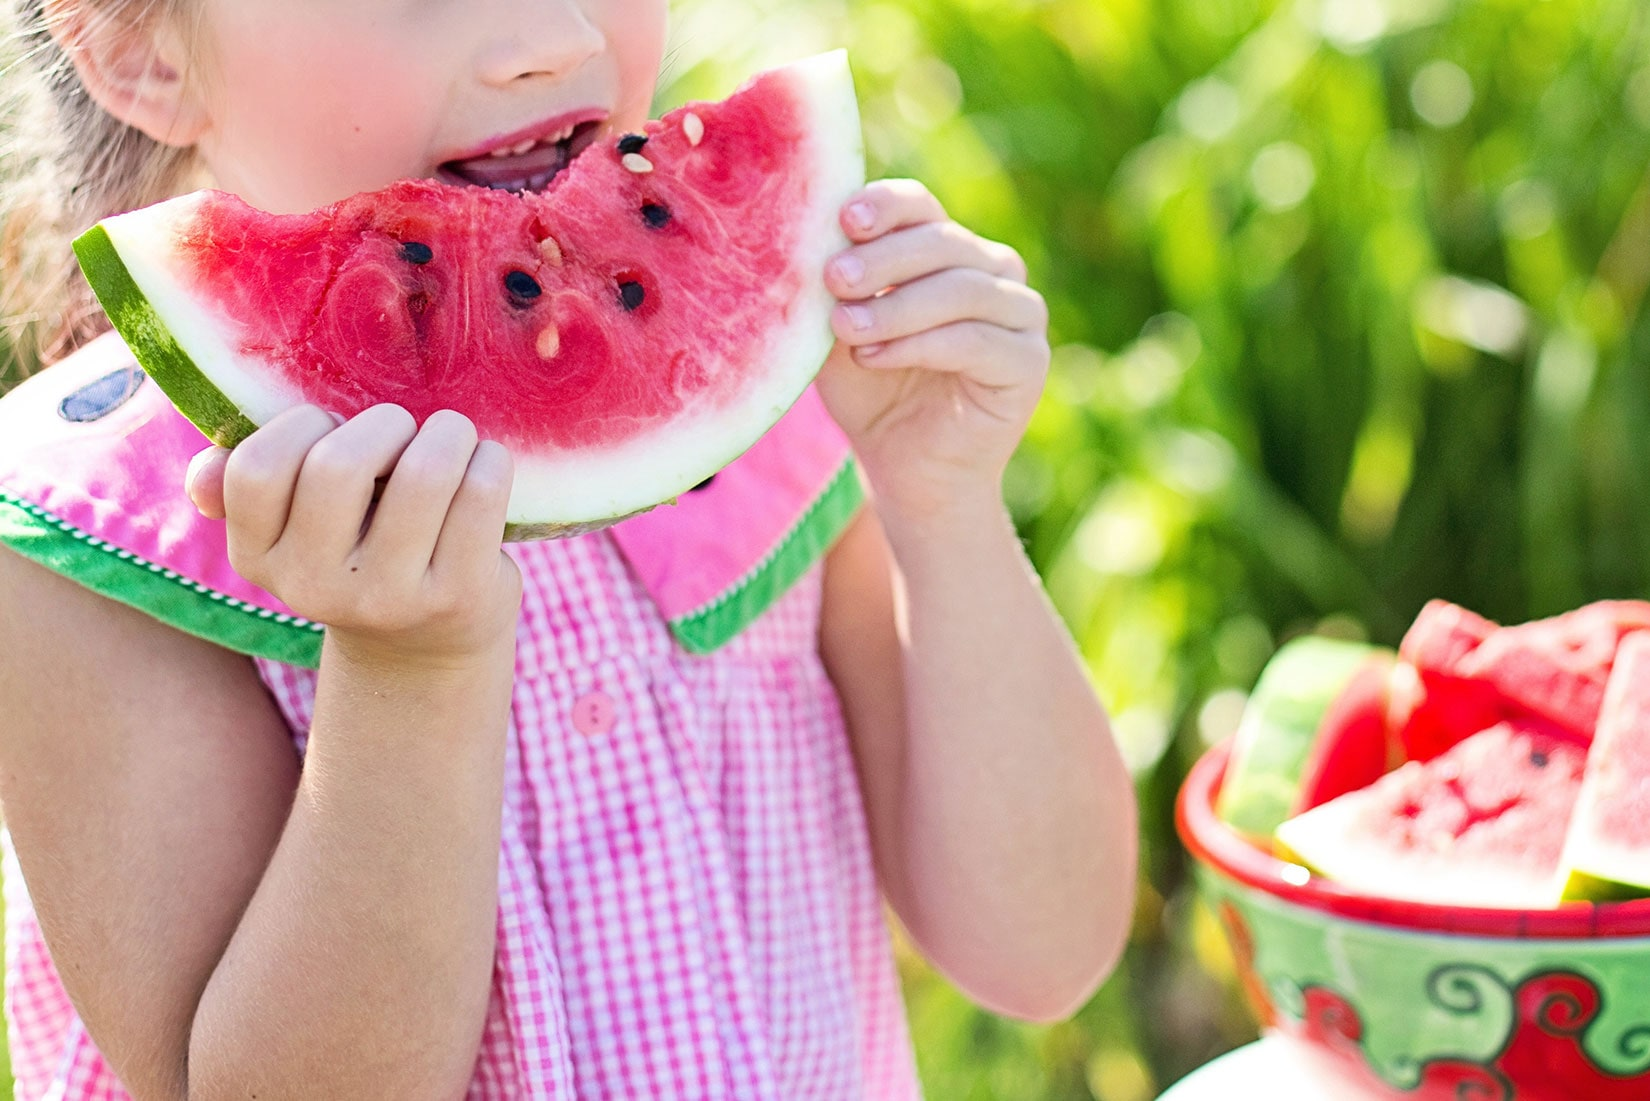 Why is it important to feed your kids a variety of foods from the 5 food groups?